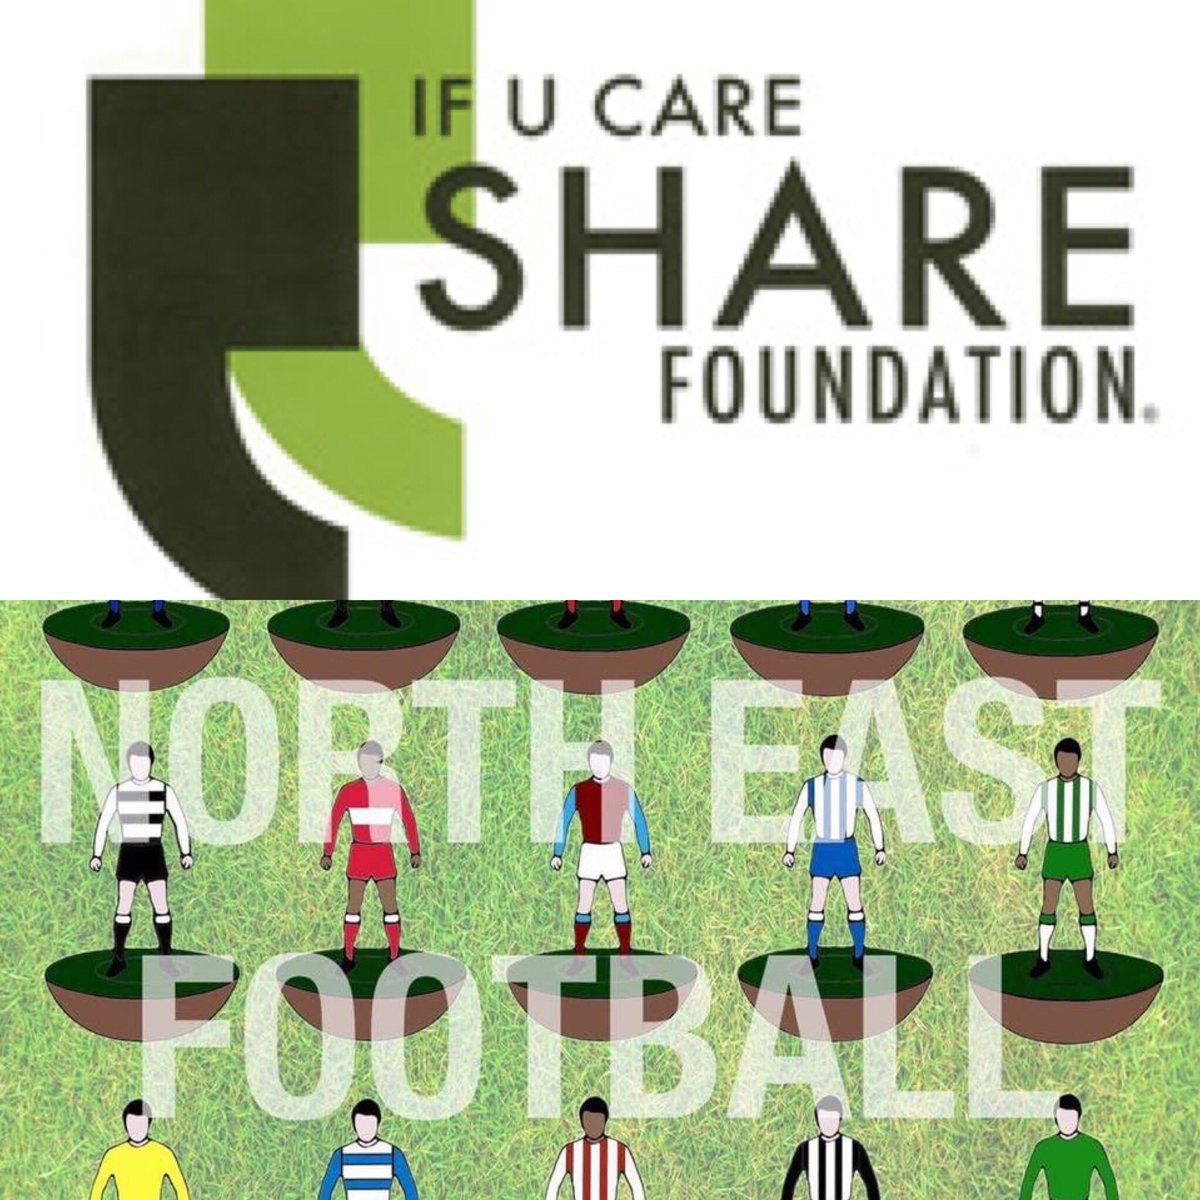 We are recording a very special and very important episode tomorrow. We'll be discussing mental health in football and society as a whole with @IFUCARESHARE co-founder @matty_smith94, @CestrianTweet midfielder @CTMazza04 and @HebburnTown forward @jackrobsonnn